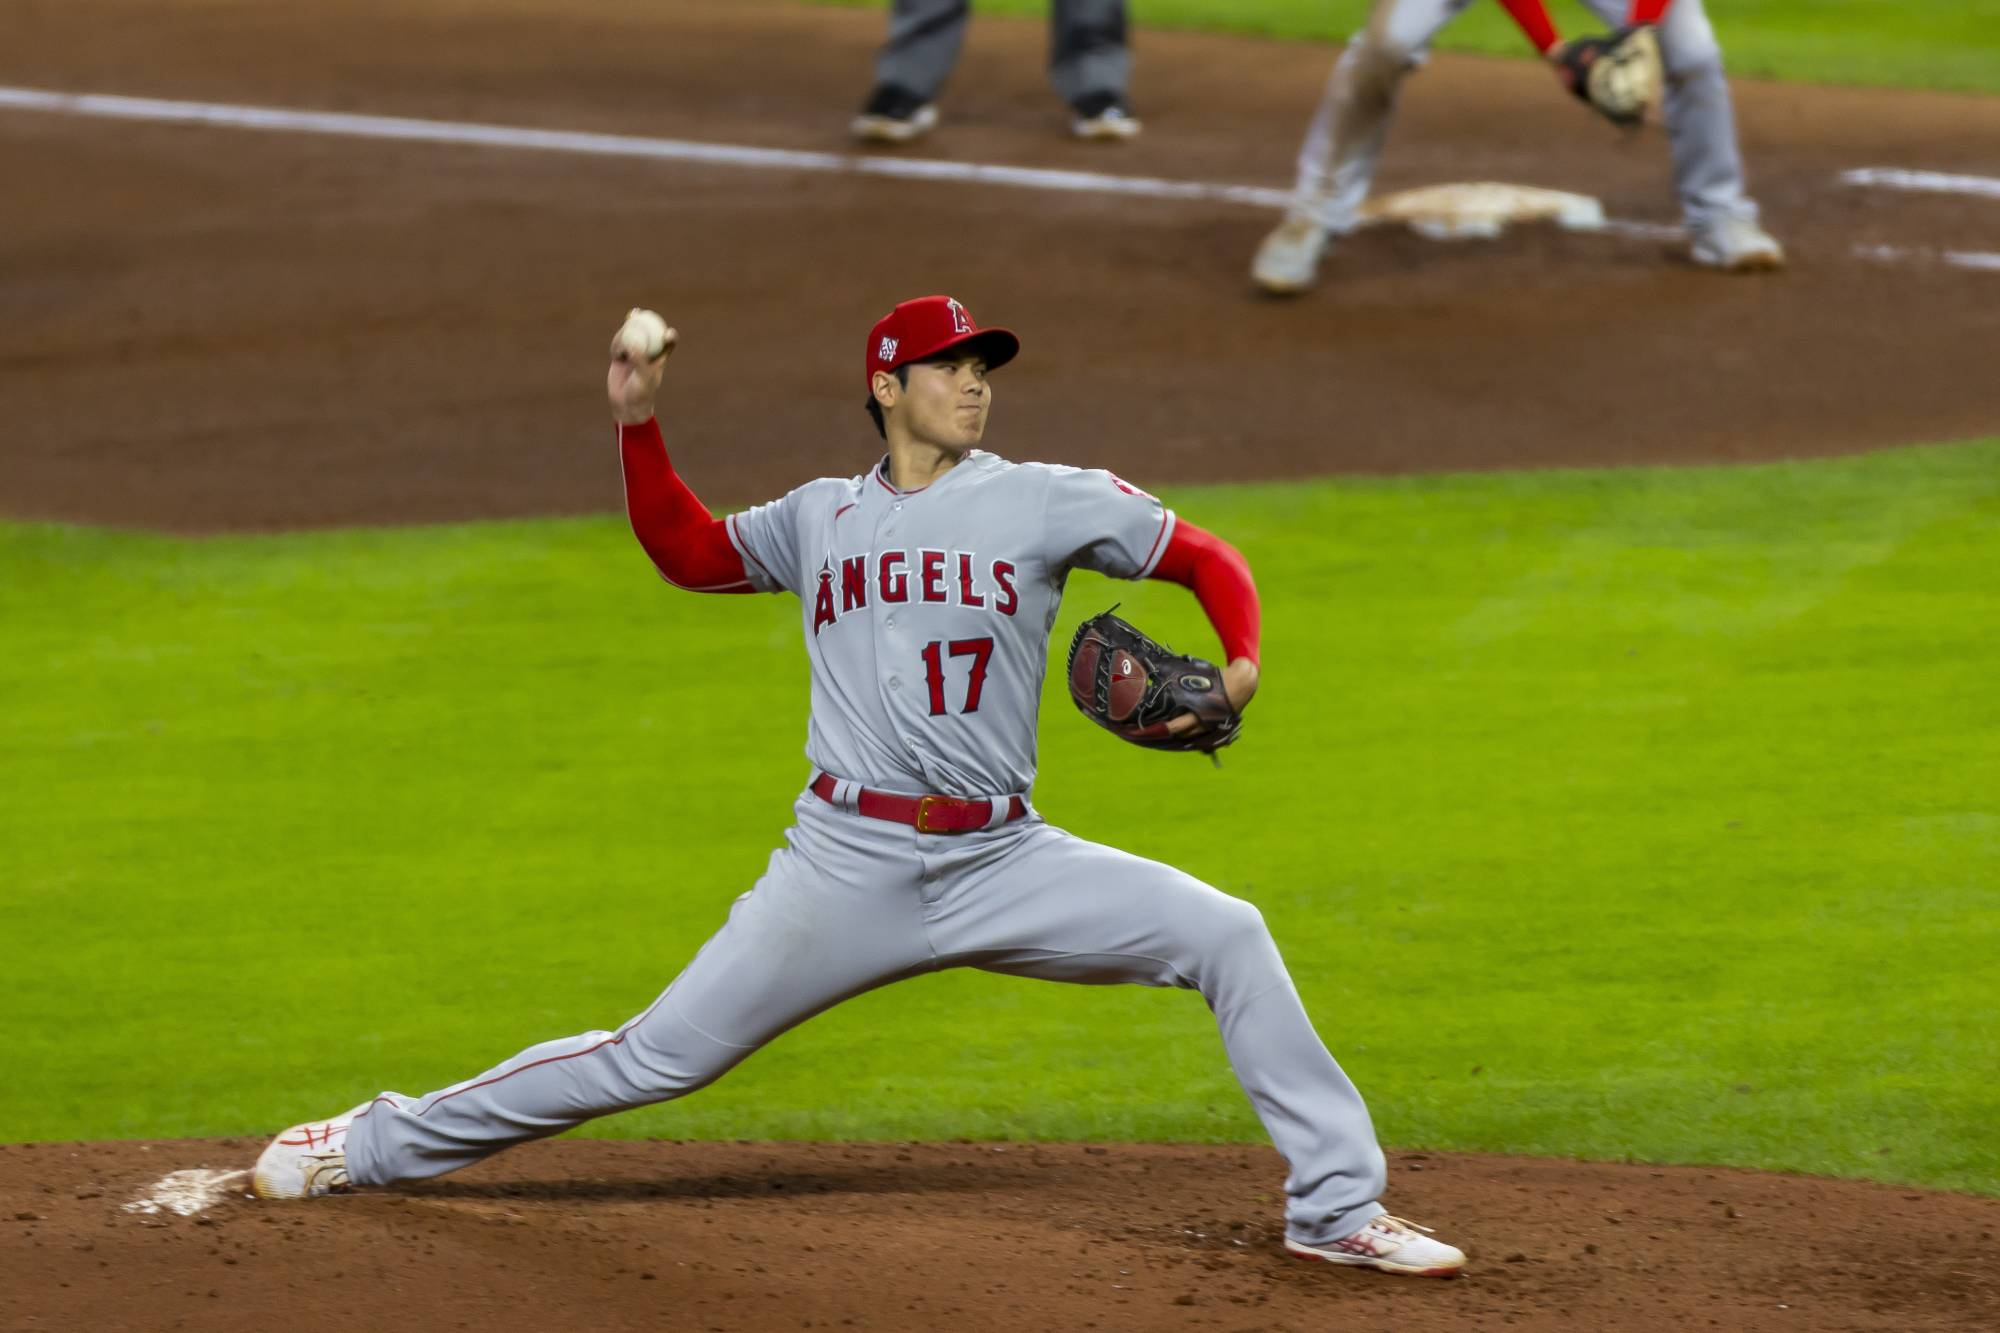 Los Angeles Angels pitcher Shohei Ohtani in action against the Houston Astros in Houston on Tuesday. Ohtani, dominating as a pitcher and a hitter, is a two-way player with Ruthian possibilities.     ANNIE MULLIGAN/THE NEW YORK TIMES